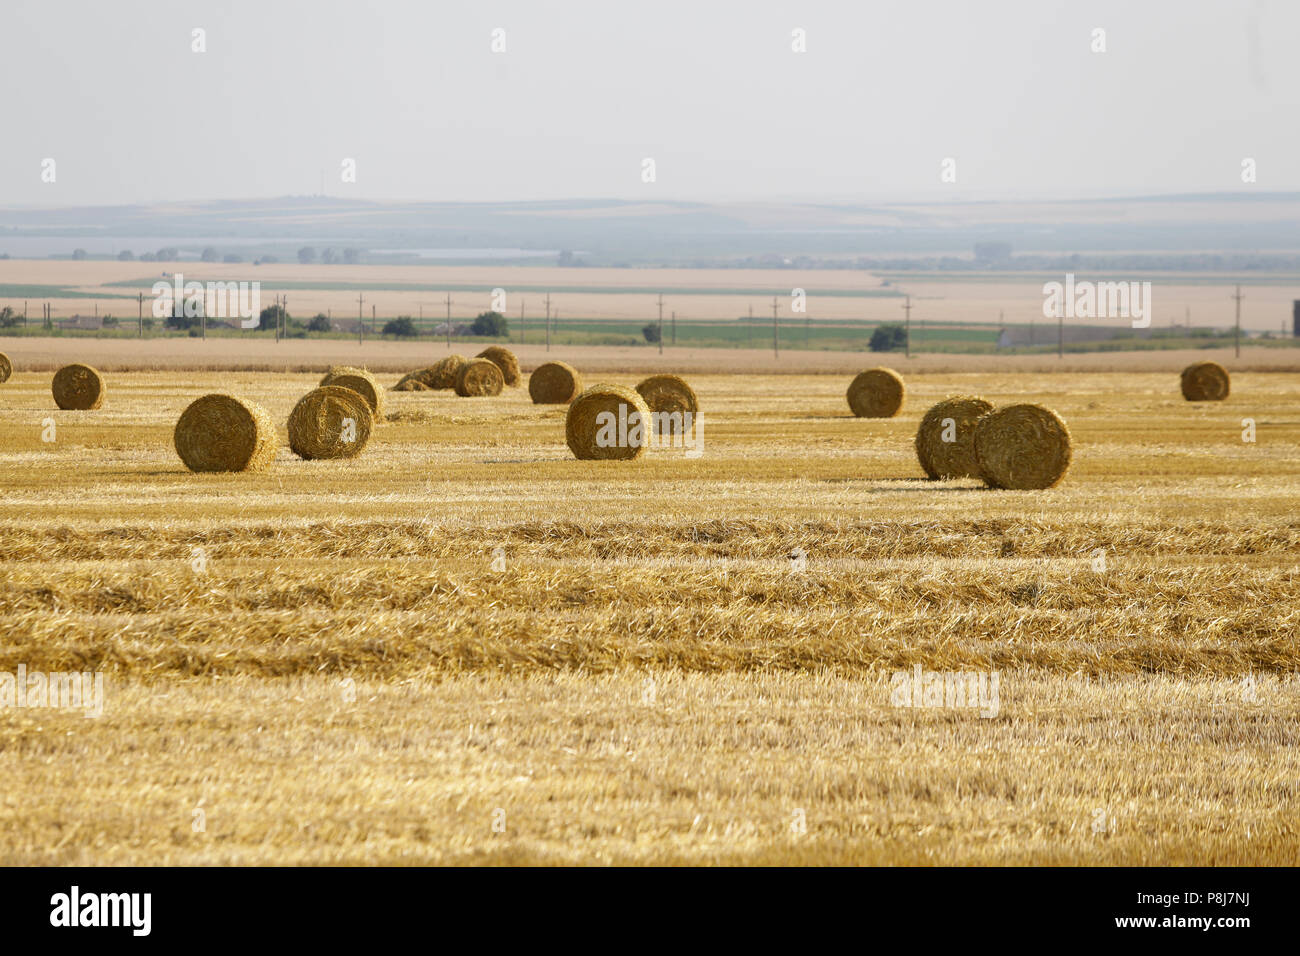 Wheat ballots on a farmer's field in southern Romania - Stock Image